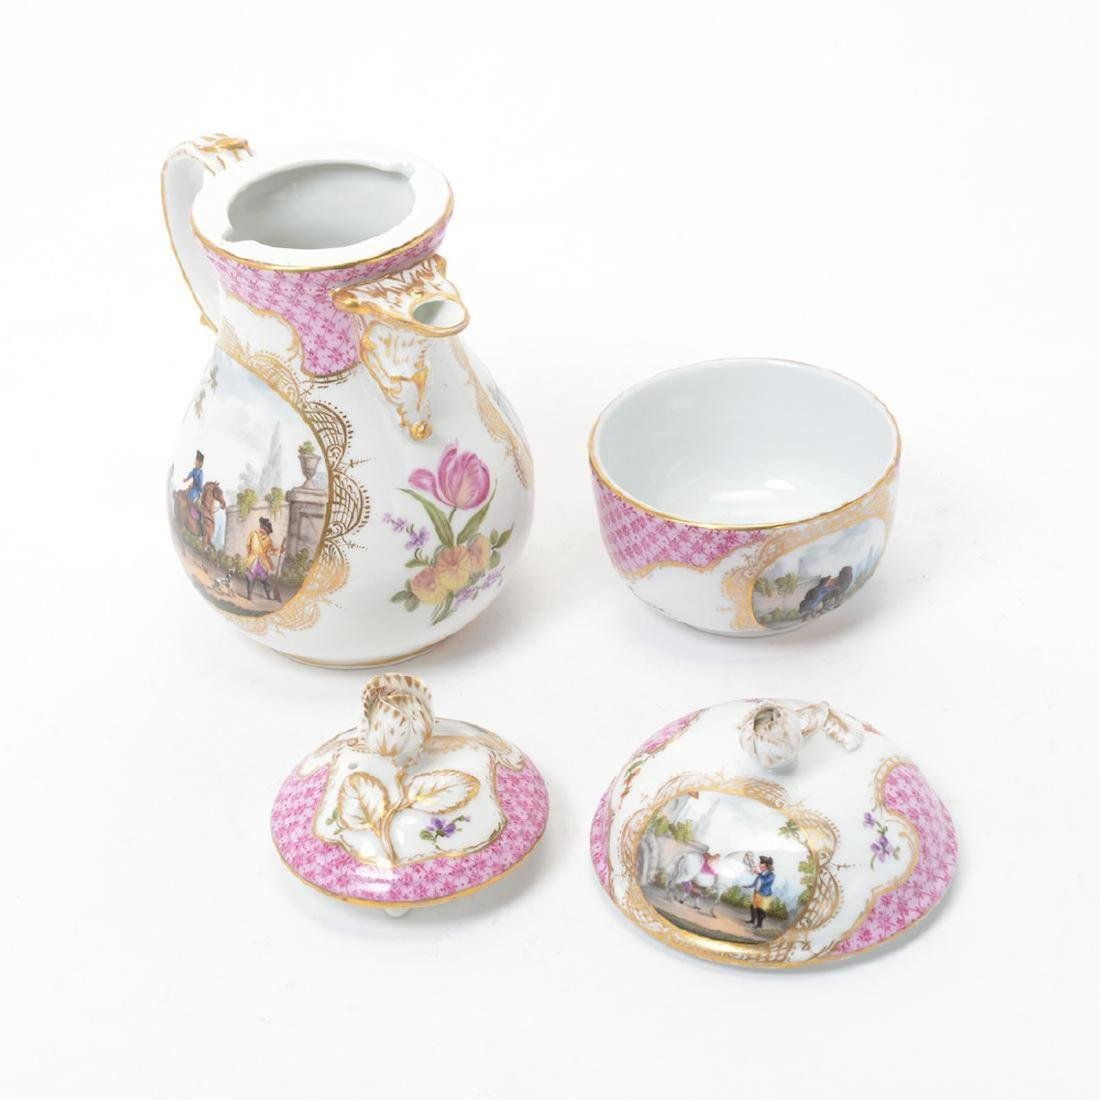 """Meissen"" Porcelain Tea Service/Tray (6 Pcs) - 9"